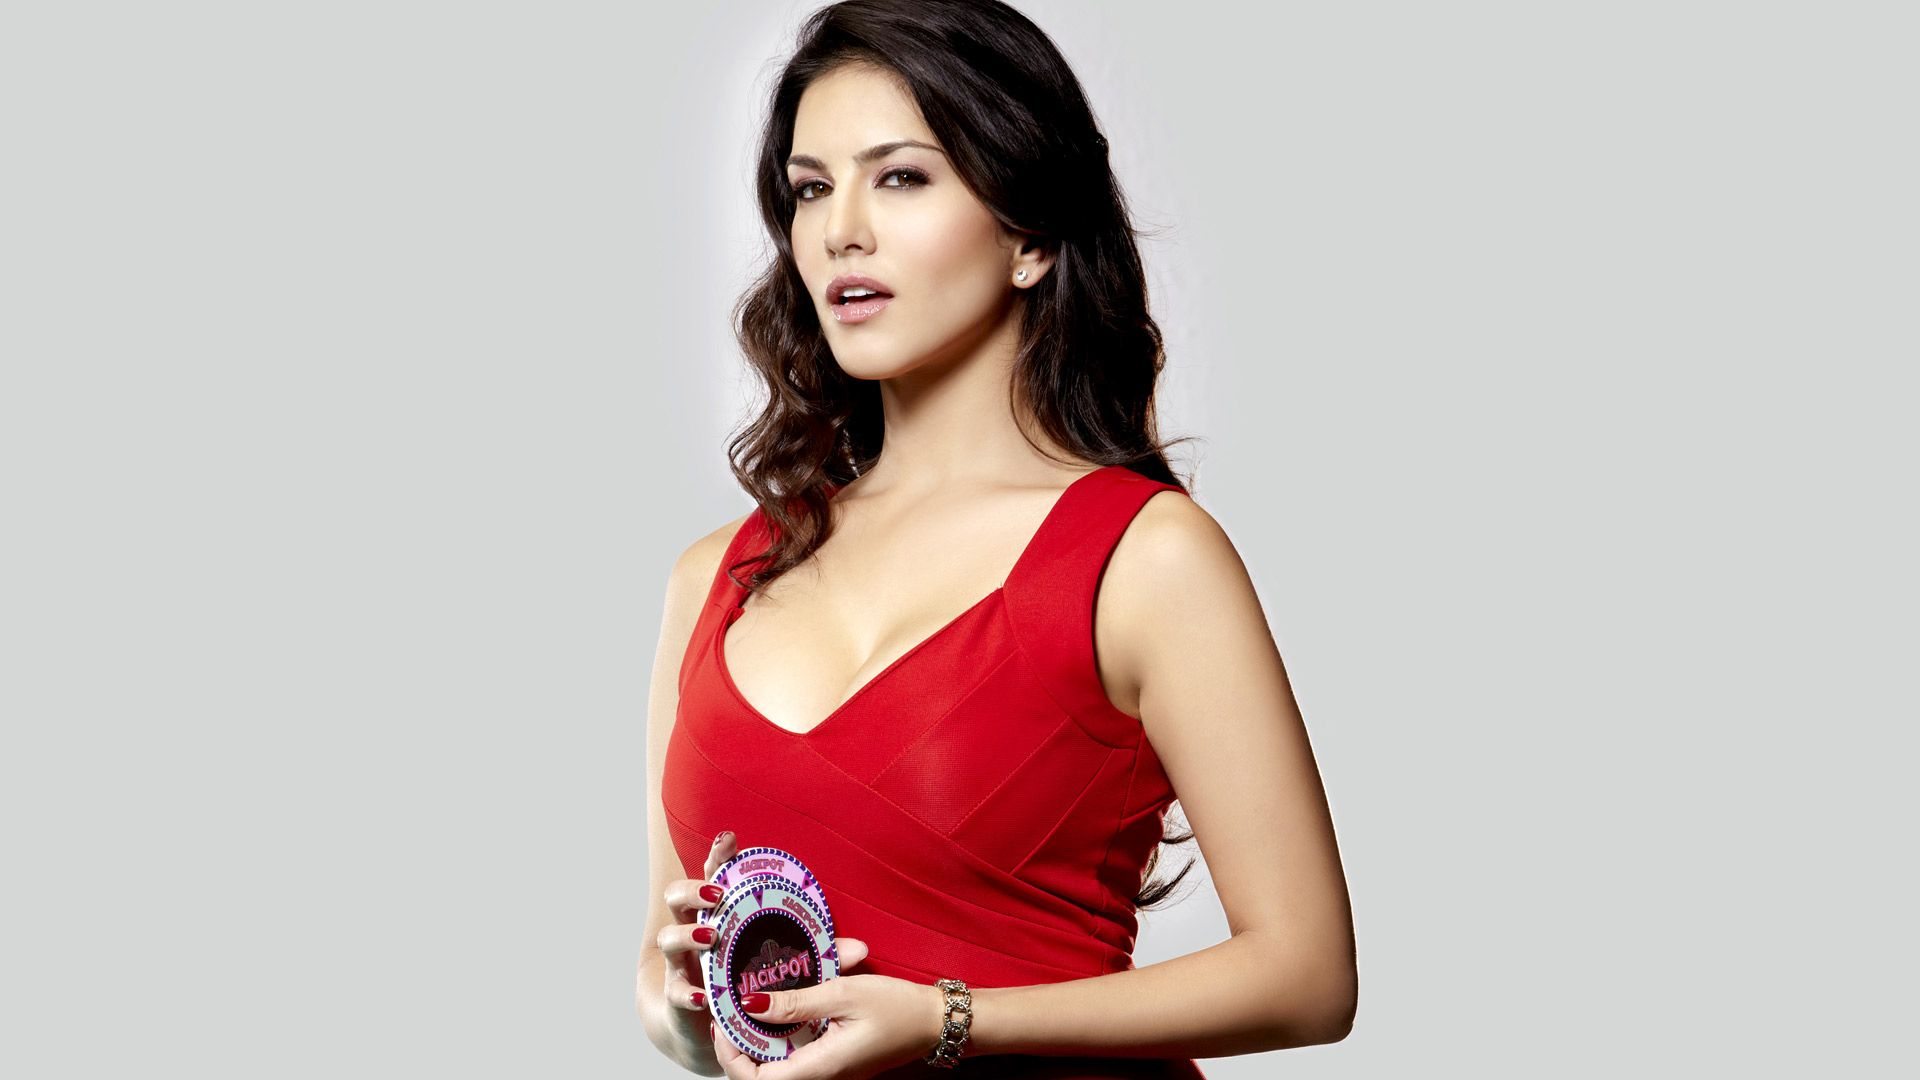 Sunny Leone Wallpapers Top Free Sunny Leone Backgrounds